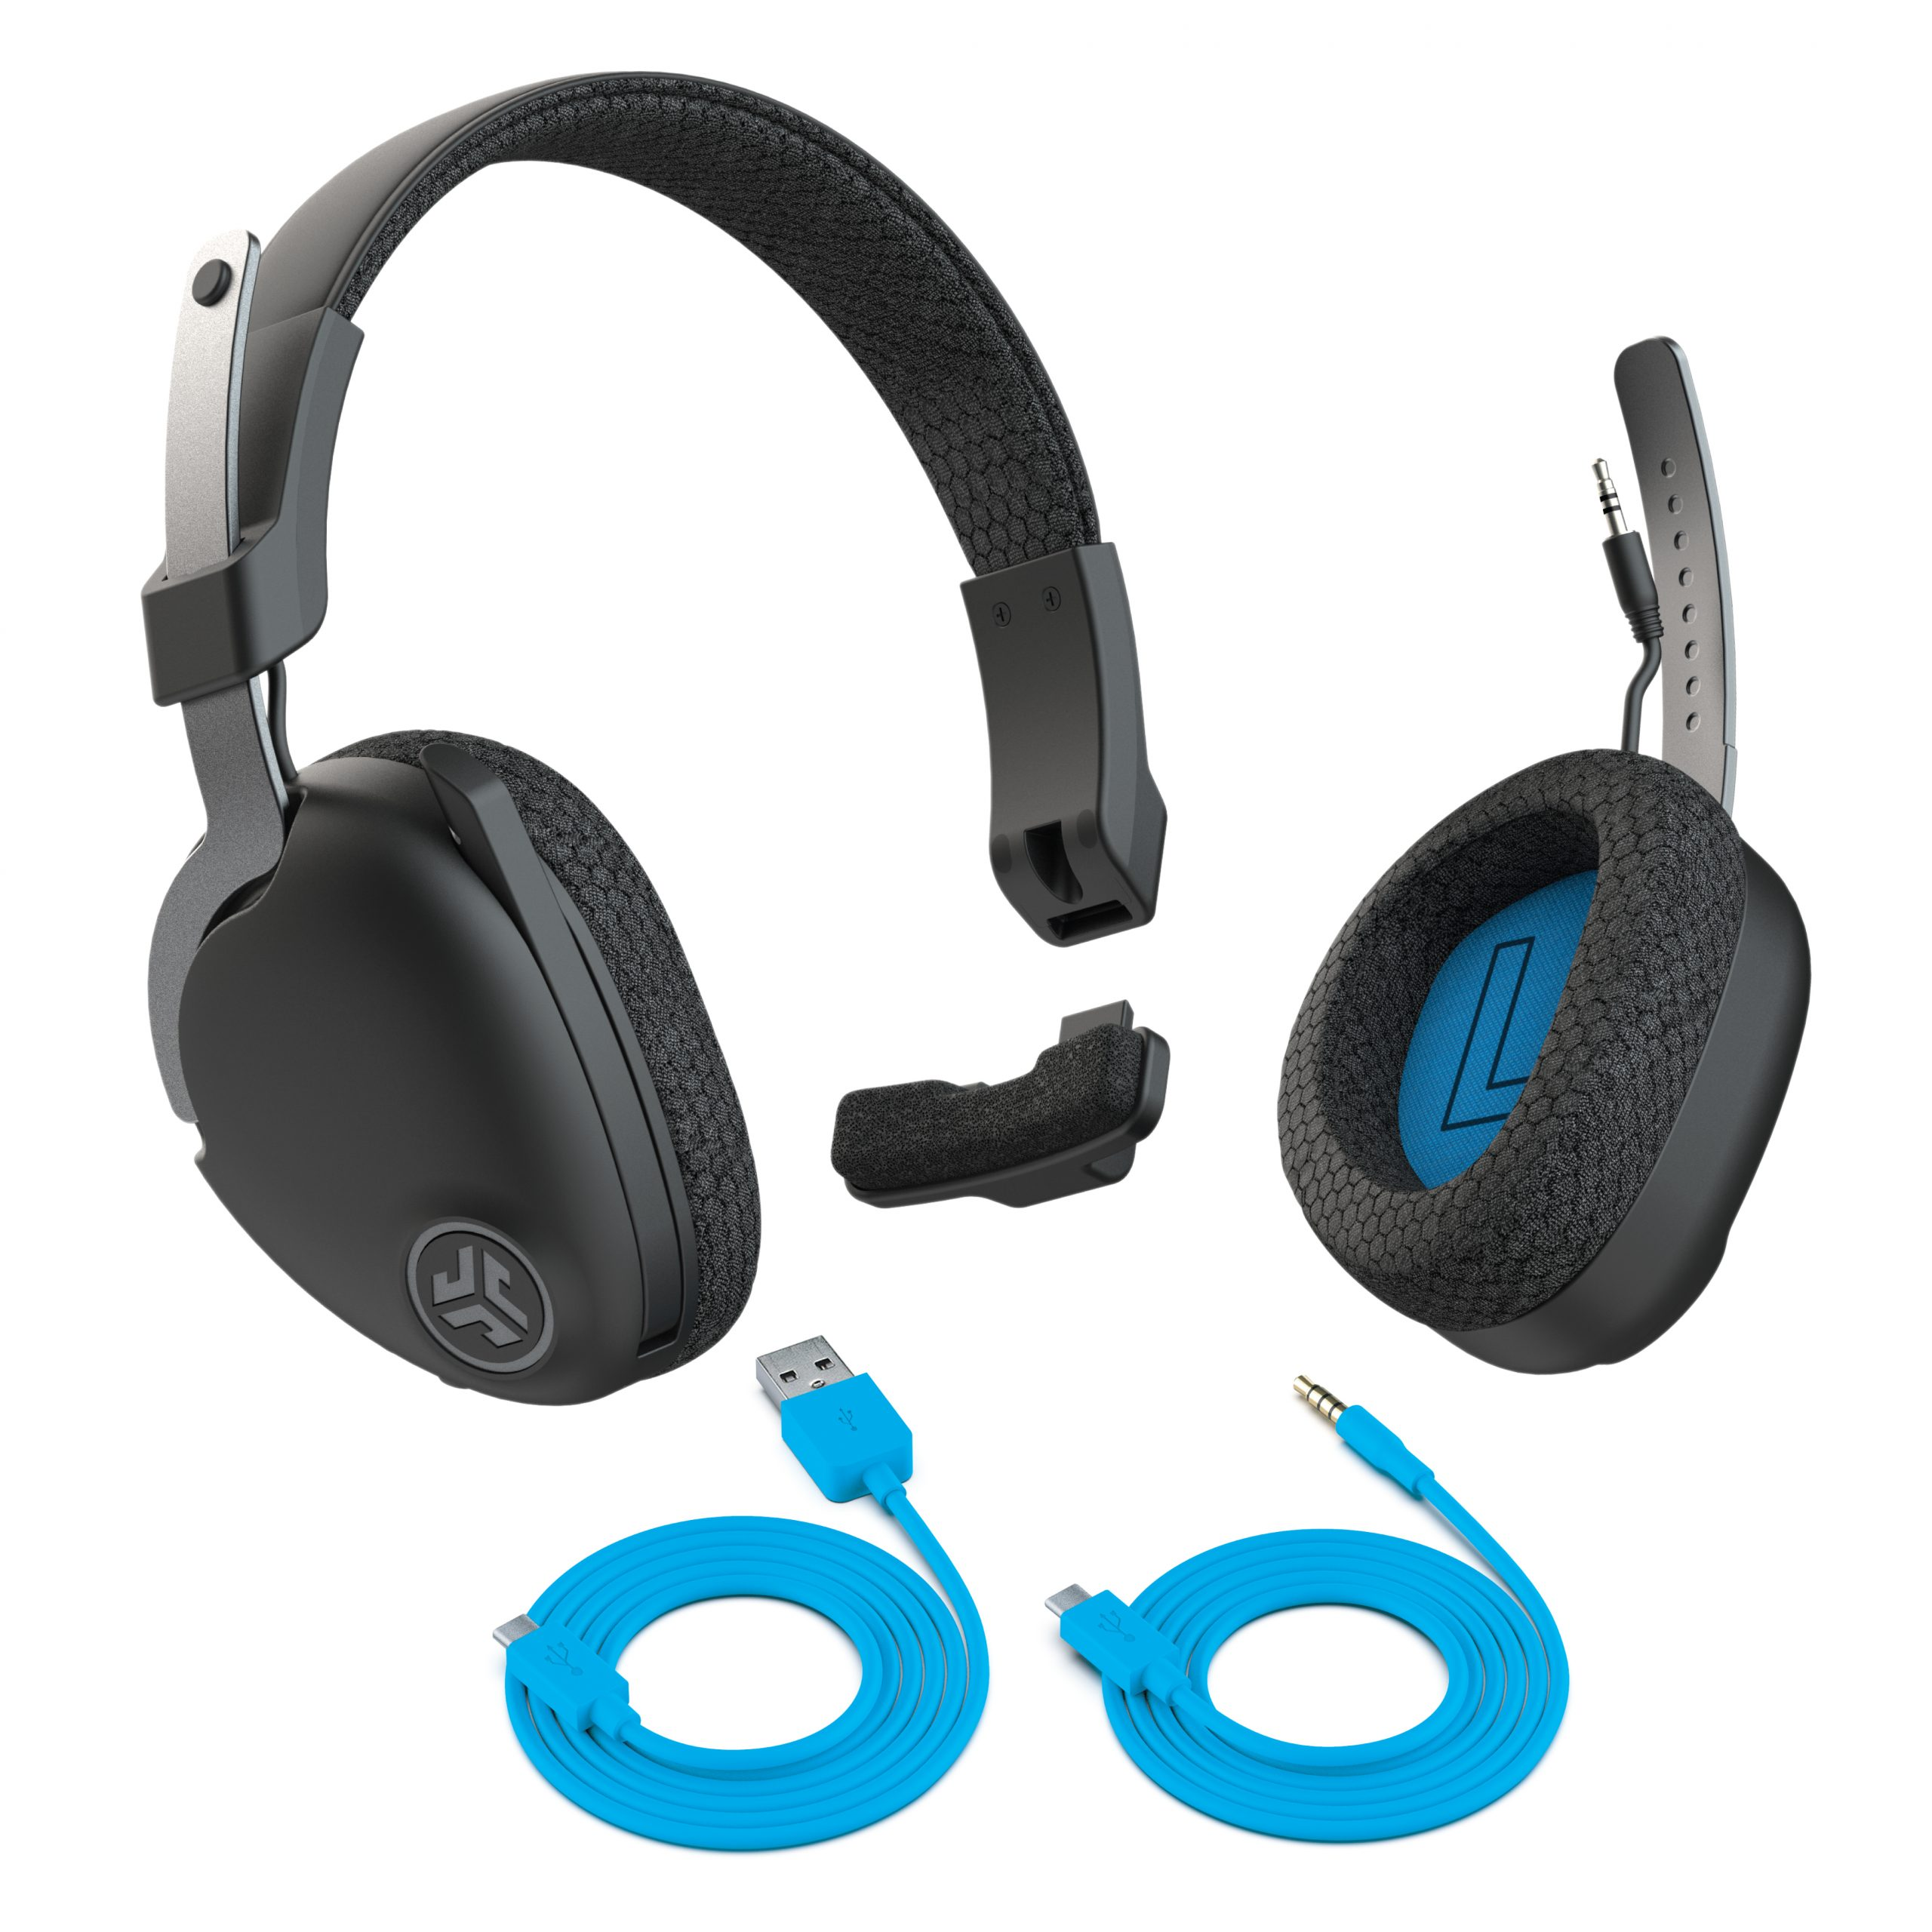 Remote work devices: A picture of the Jlab work headphones with the charging cable and aux cord.